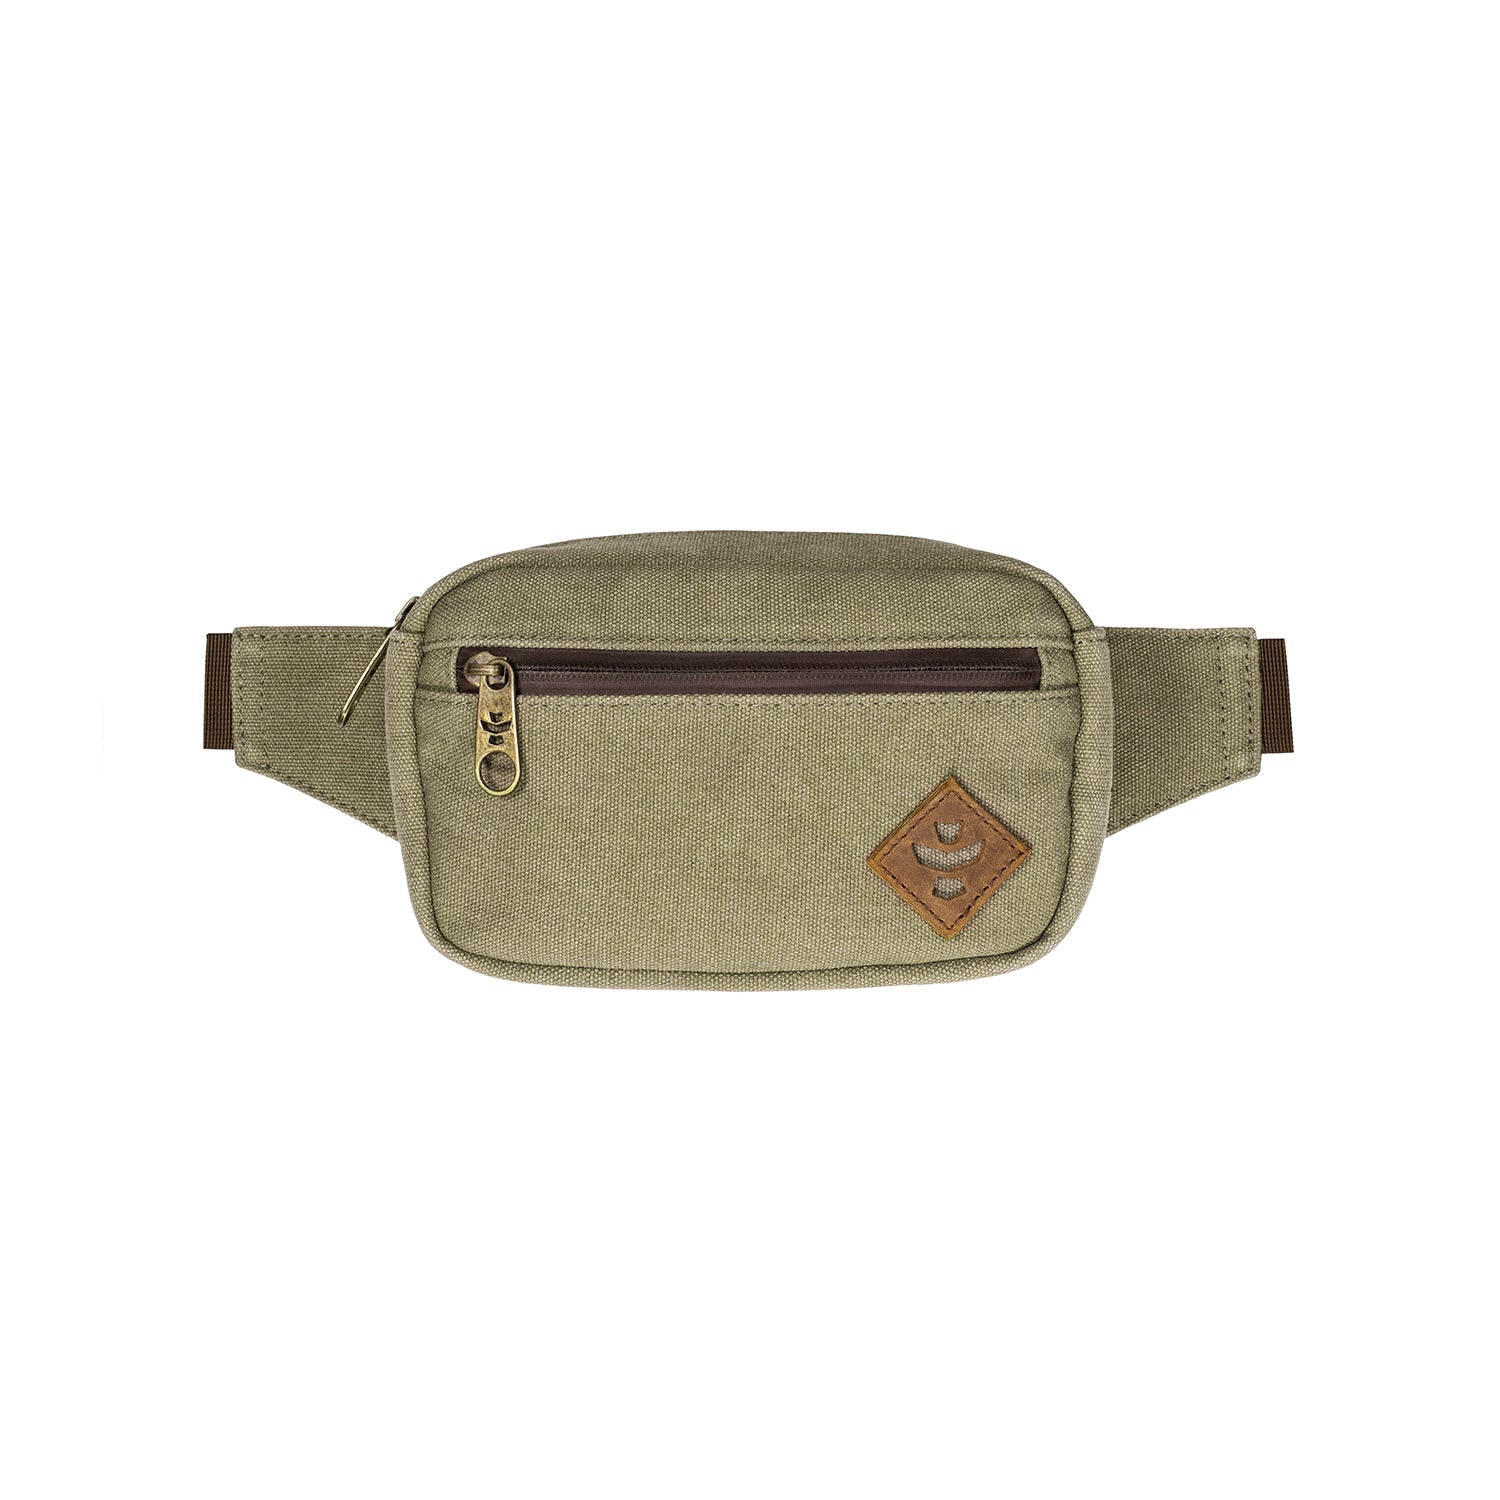 Sage Canvas Smell Proof Water Resistant Crossbody Bag